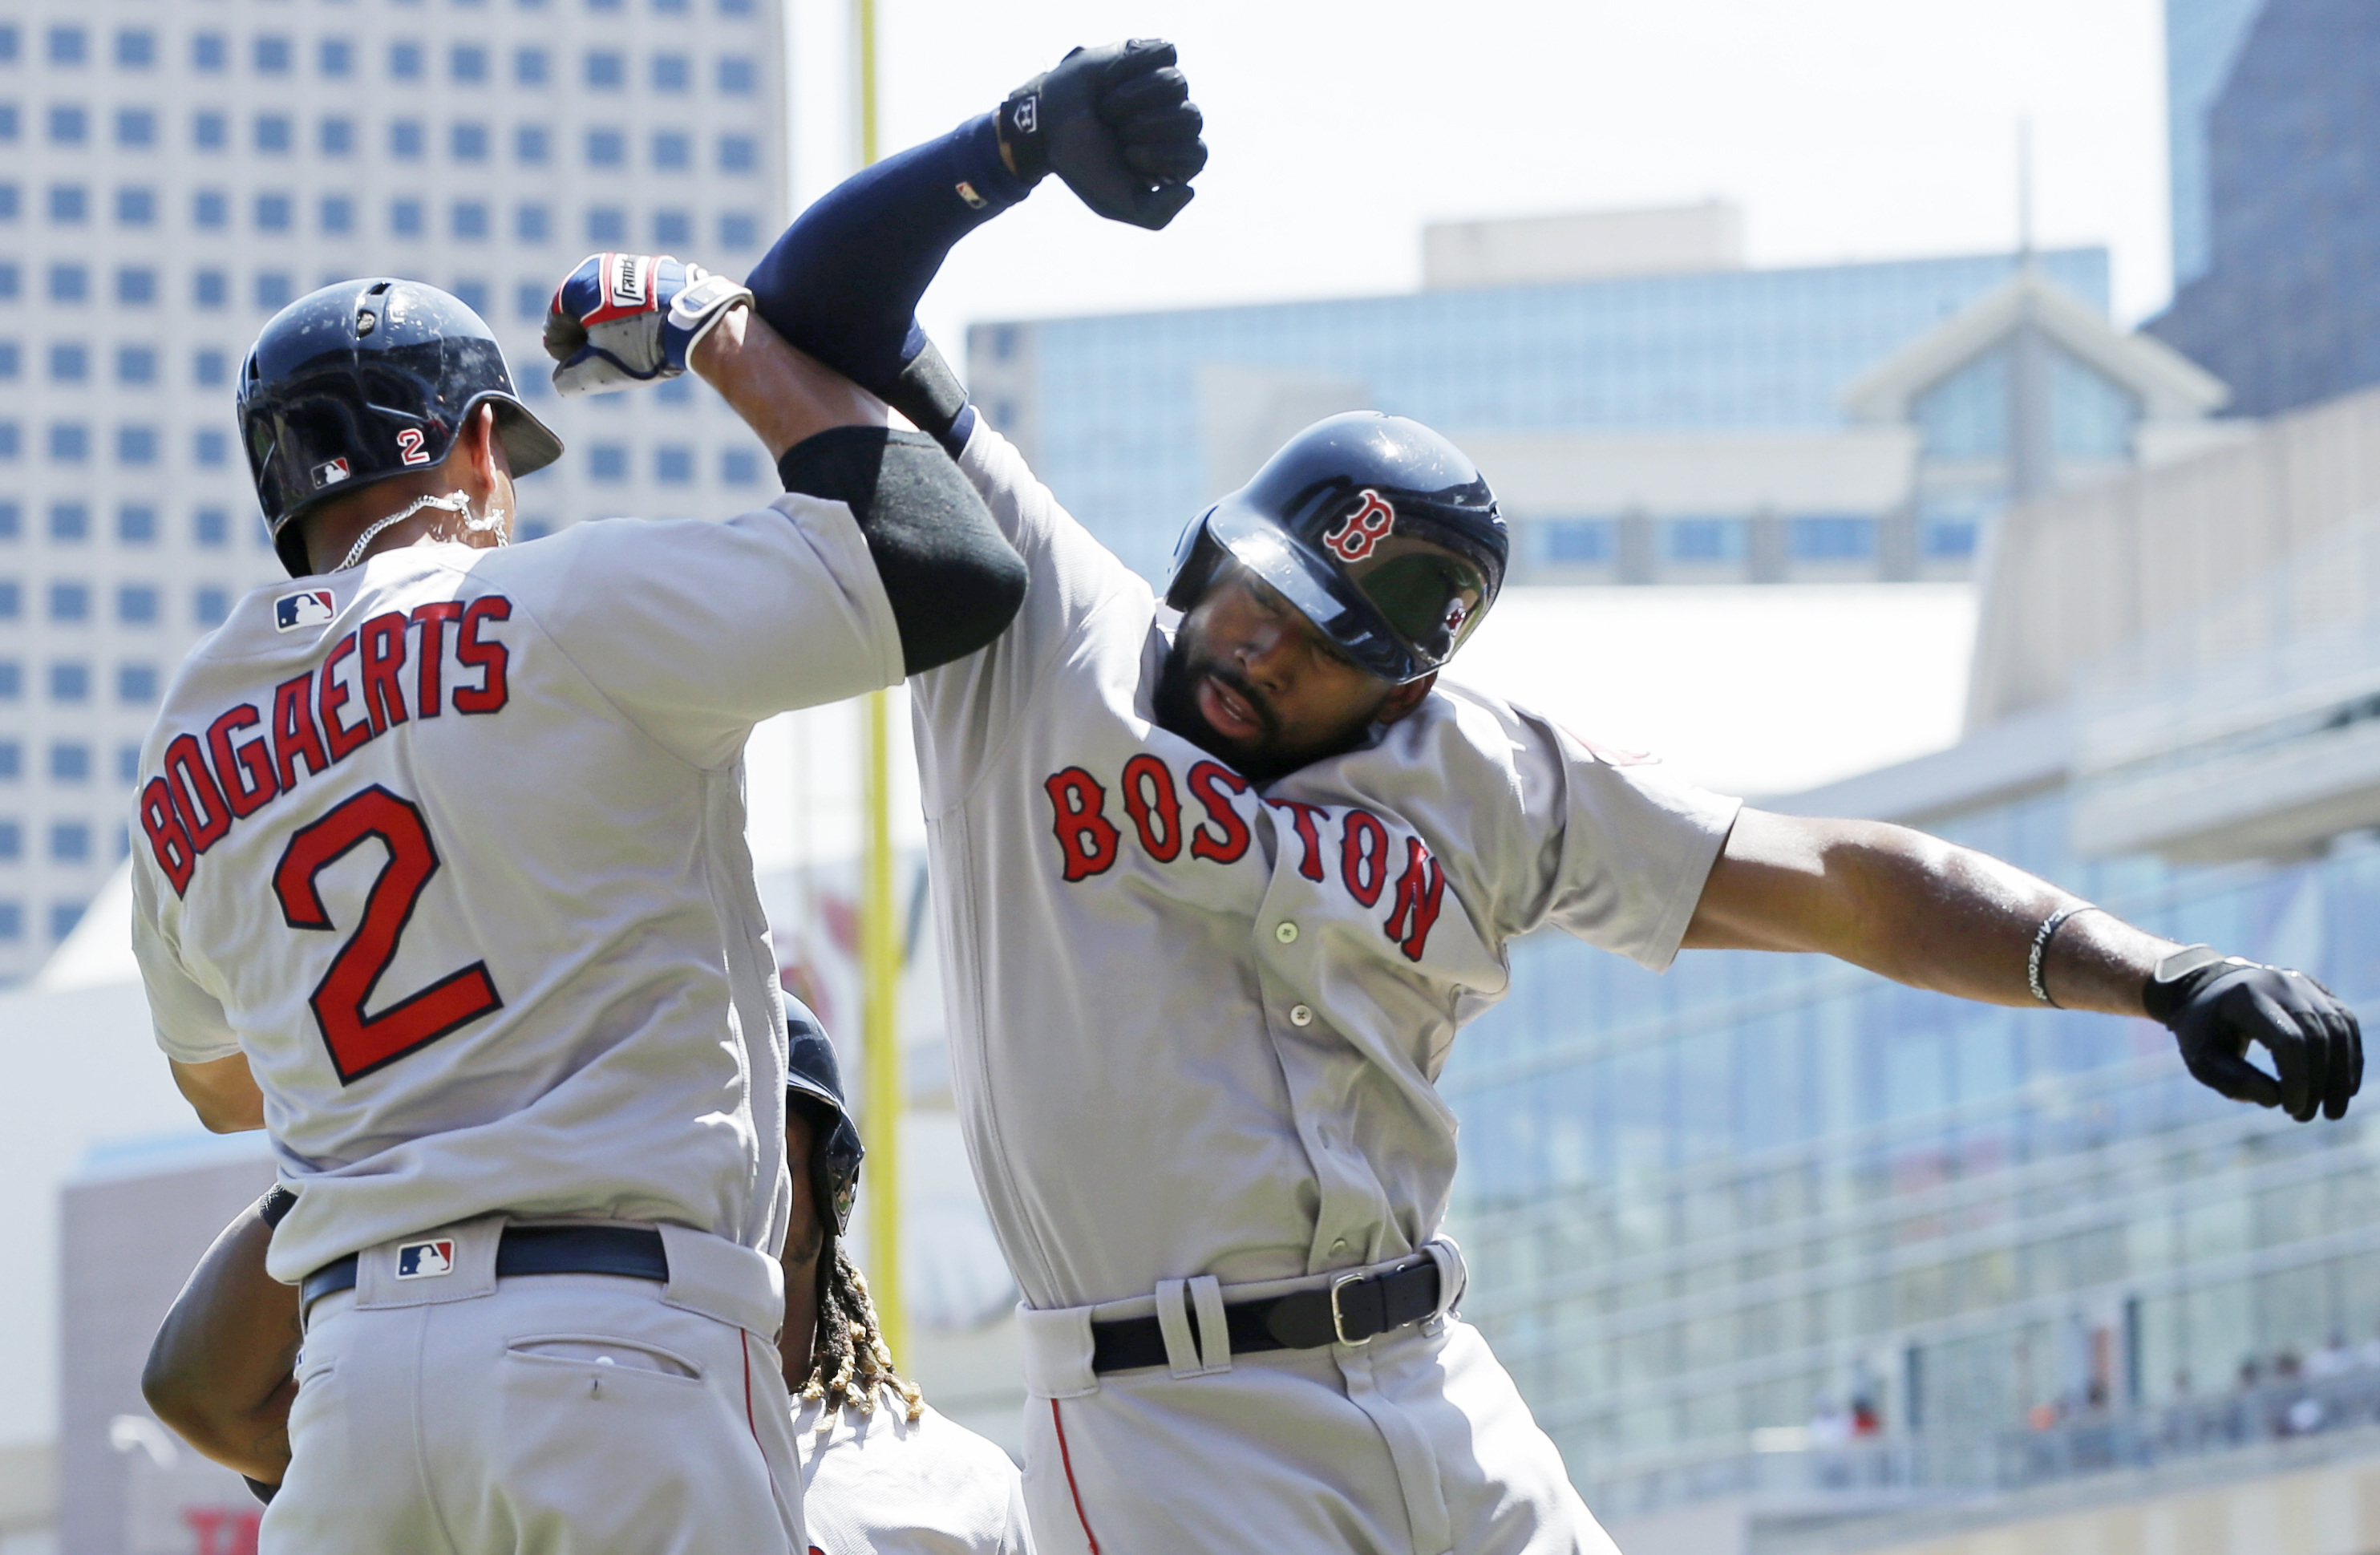 Boston Red Sox's Jackie Bradley Jr., right, celebrates with Xander Bogaerts after Bradley's three-run home run off Minnesota Twins pitcher Kyle Gibson in the first inning of a baseball game Saturday, June 11, 2016, in Minneapolis. (AP Photo/Jim Mone)